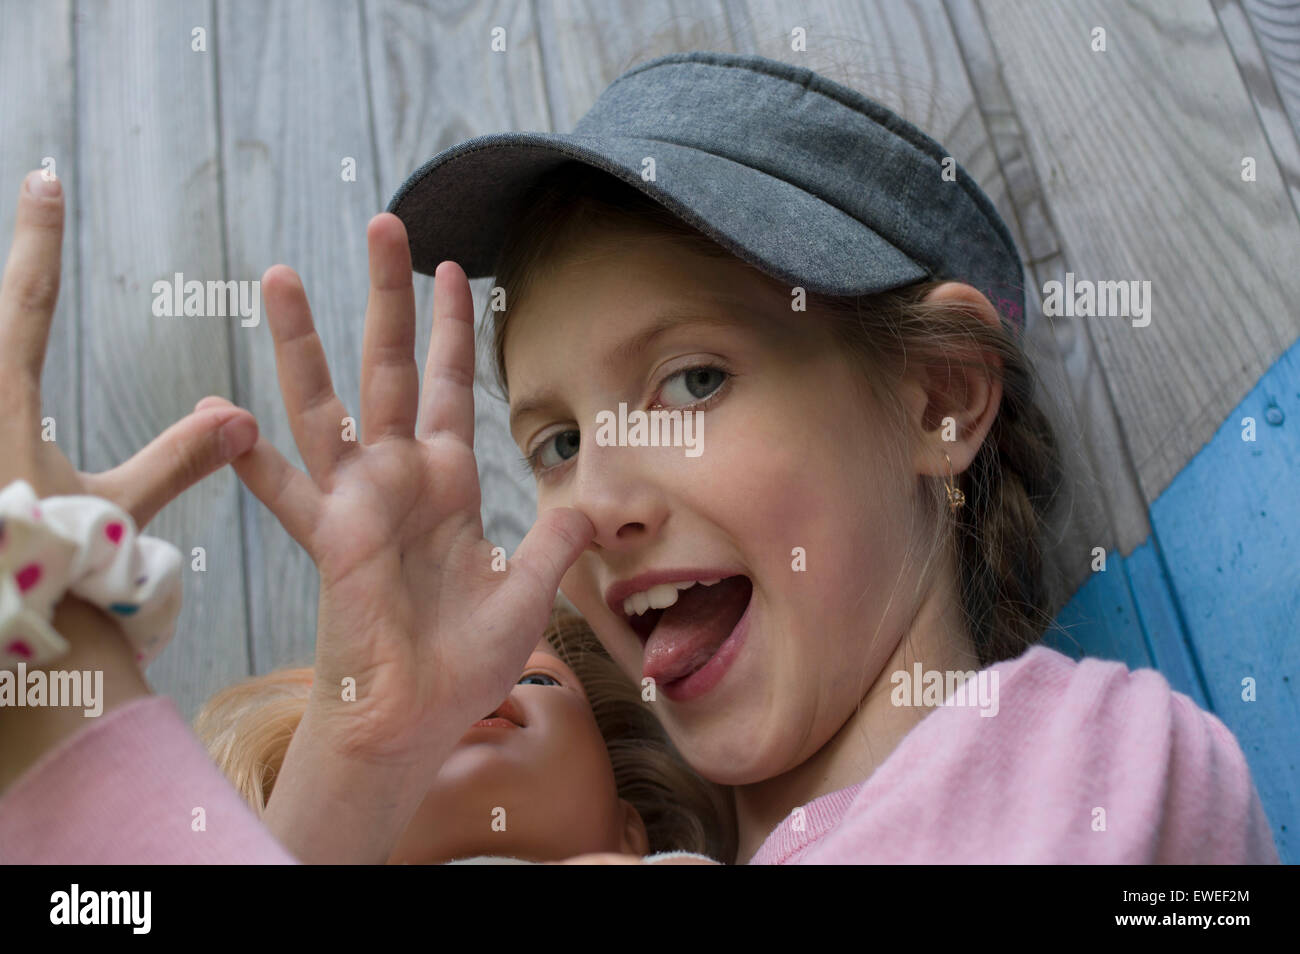 Girl Sticking Out Her Tonque Stock Photo